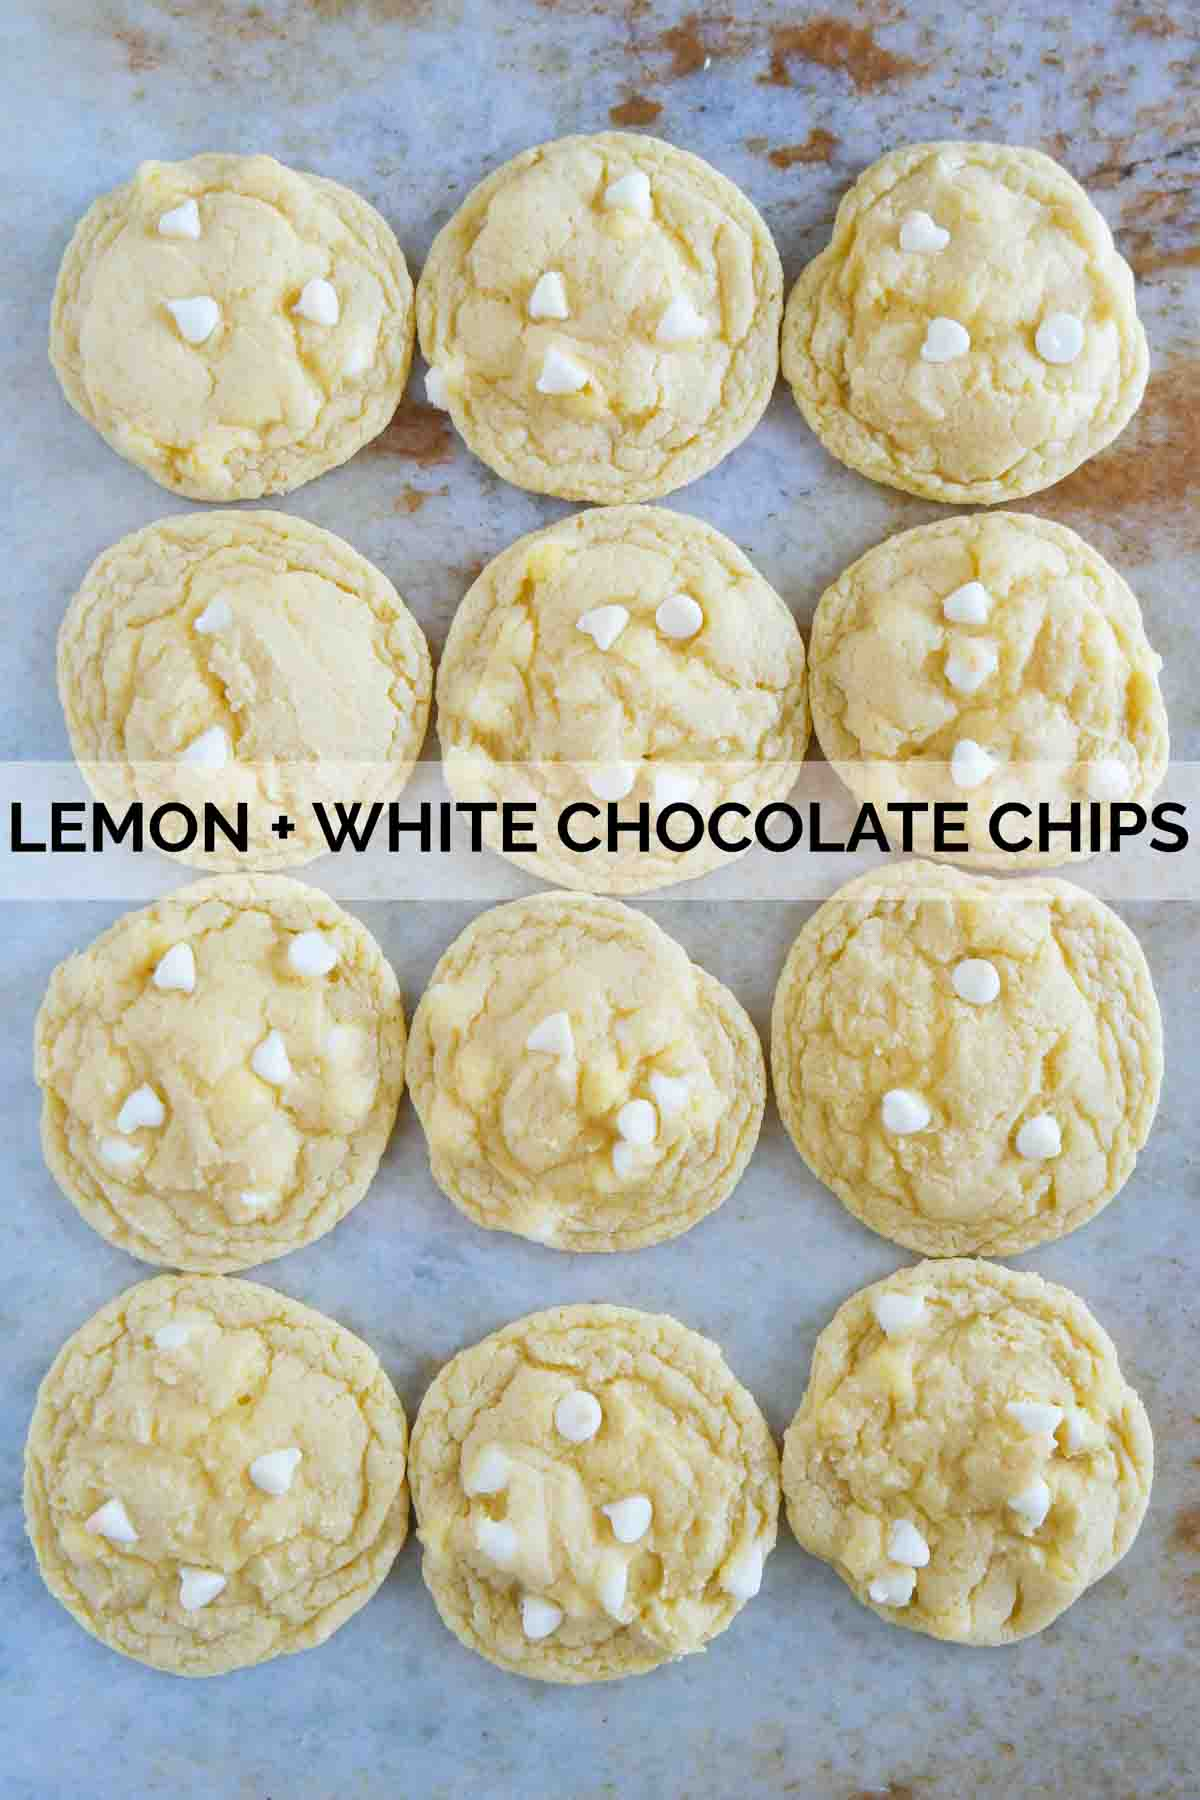 Cake mix cookies made from lemon cake mix and white chocolate chips